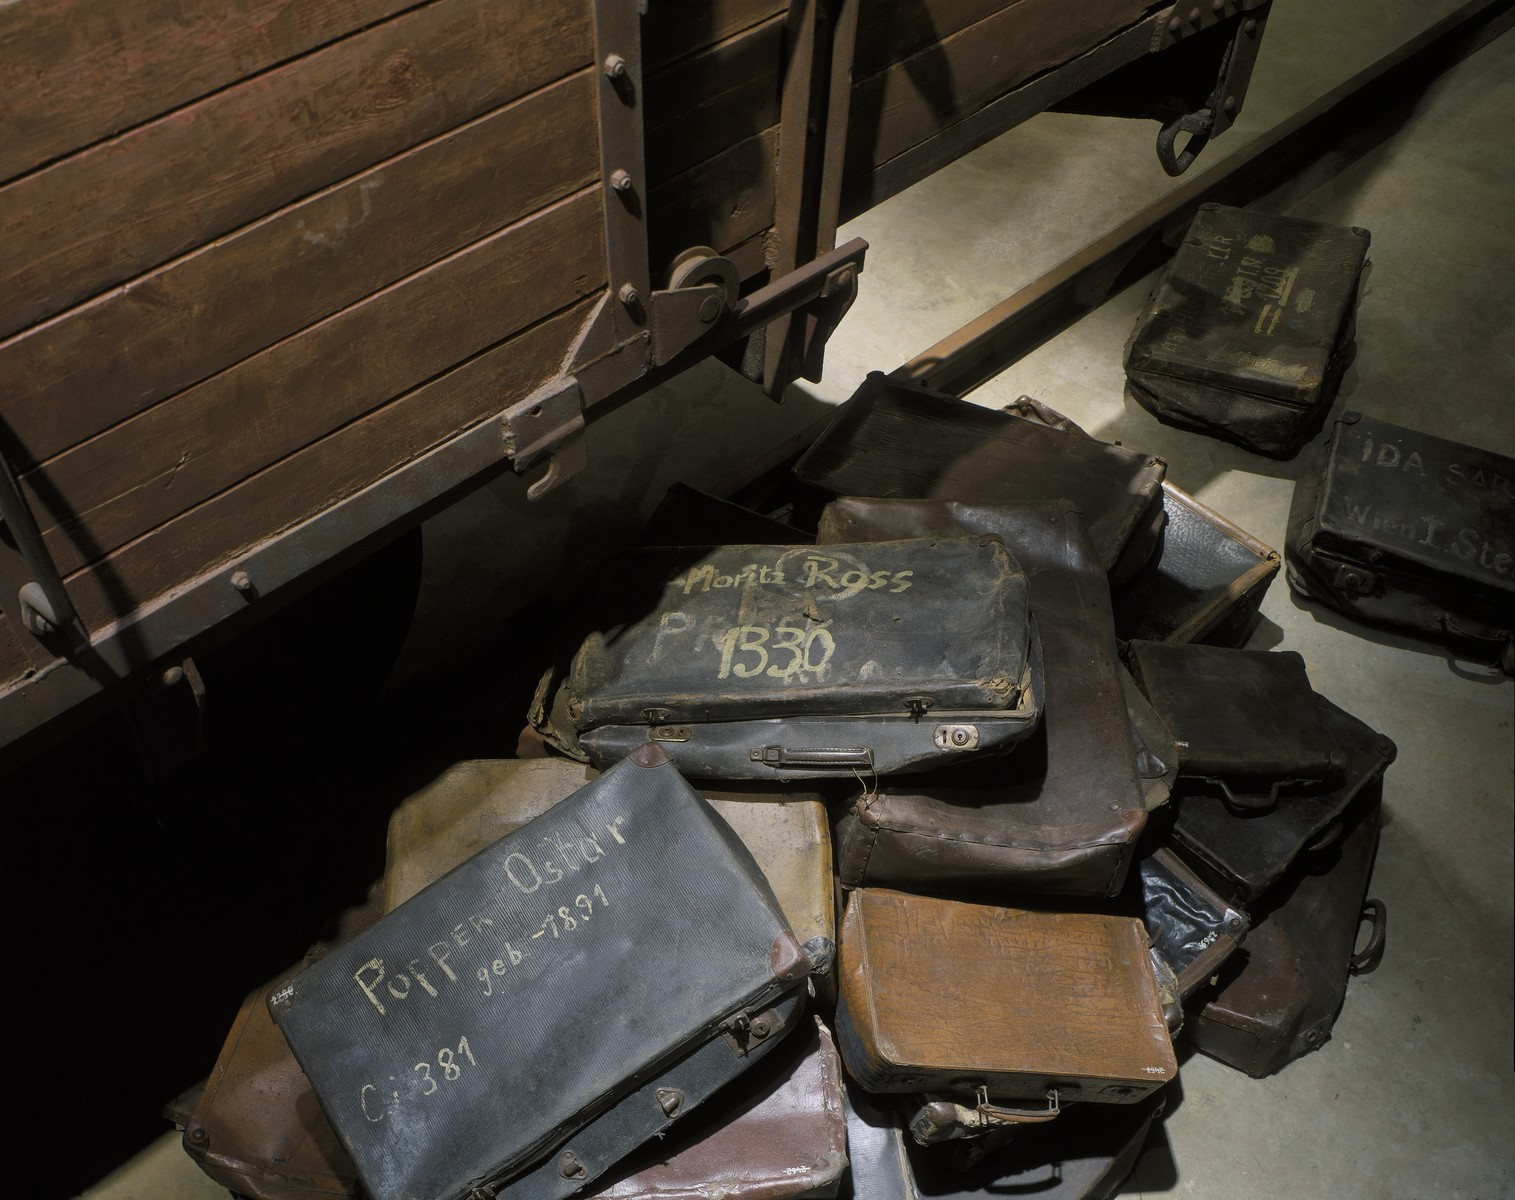 A collection of valises belonging to Jews who were deported to death camps, that are displayed at the base of the railcar on the third floor of the permanent exhibition at the U.S. Holocaust Memorial Museum.